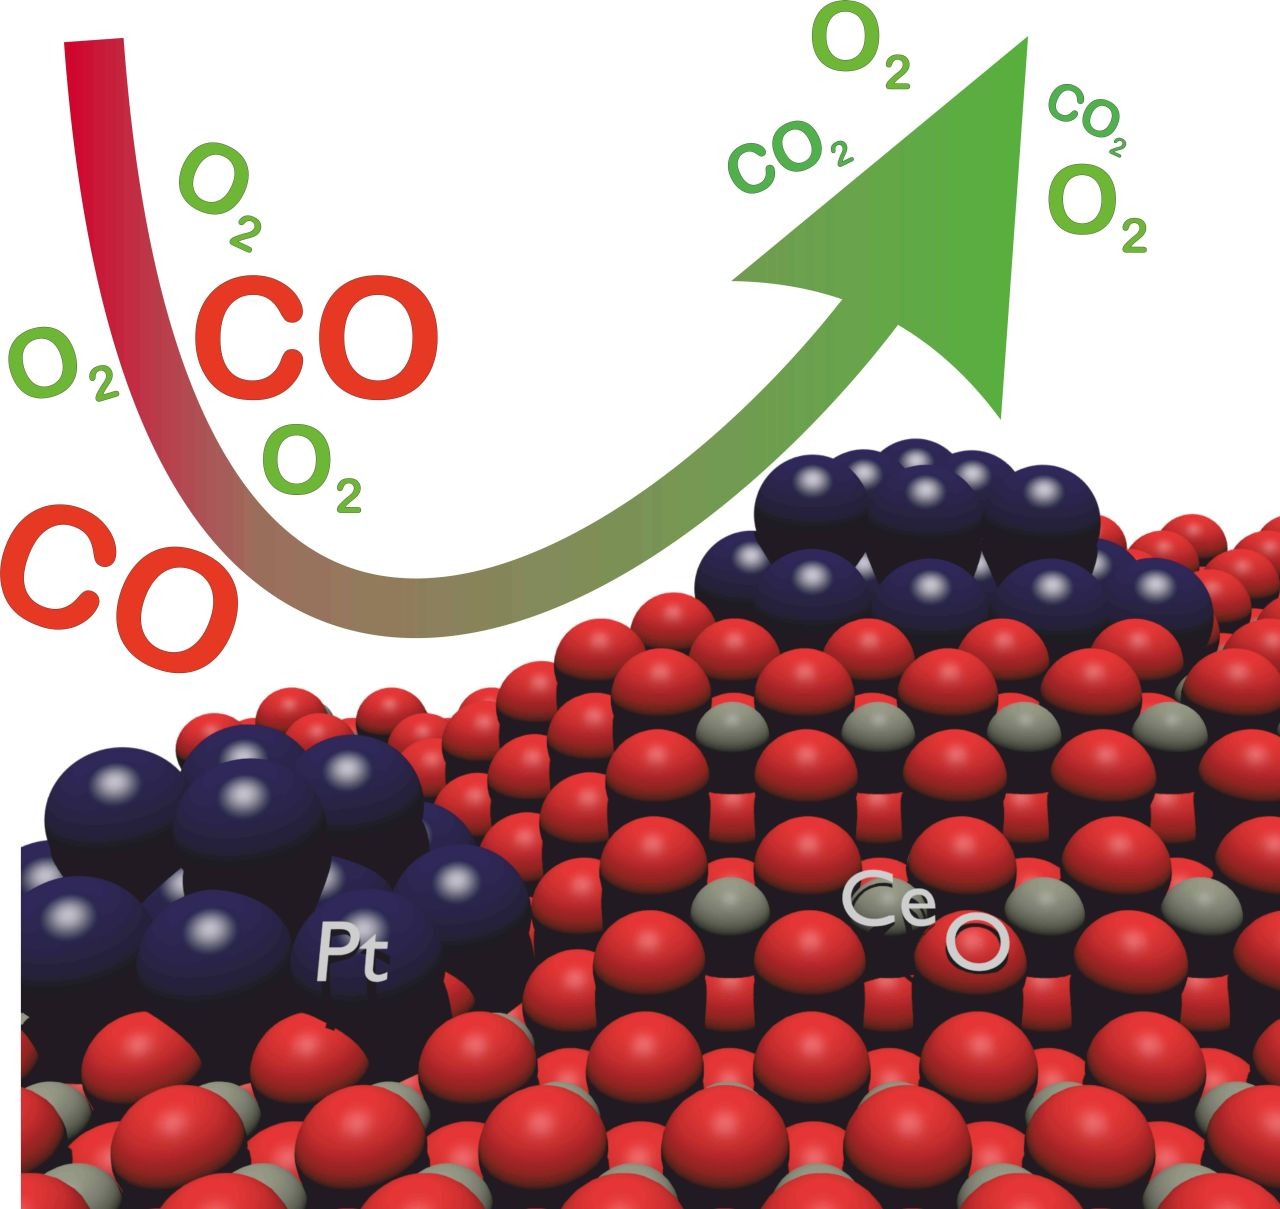 The catalytic converter of a car converts toxic carbon monoxide (CO) into non-toxic carbon dioxide (CO2) and consists of cerium (Ce), oxygen (O), and platinum (Pt). (Figure: Gänzler/KIT)